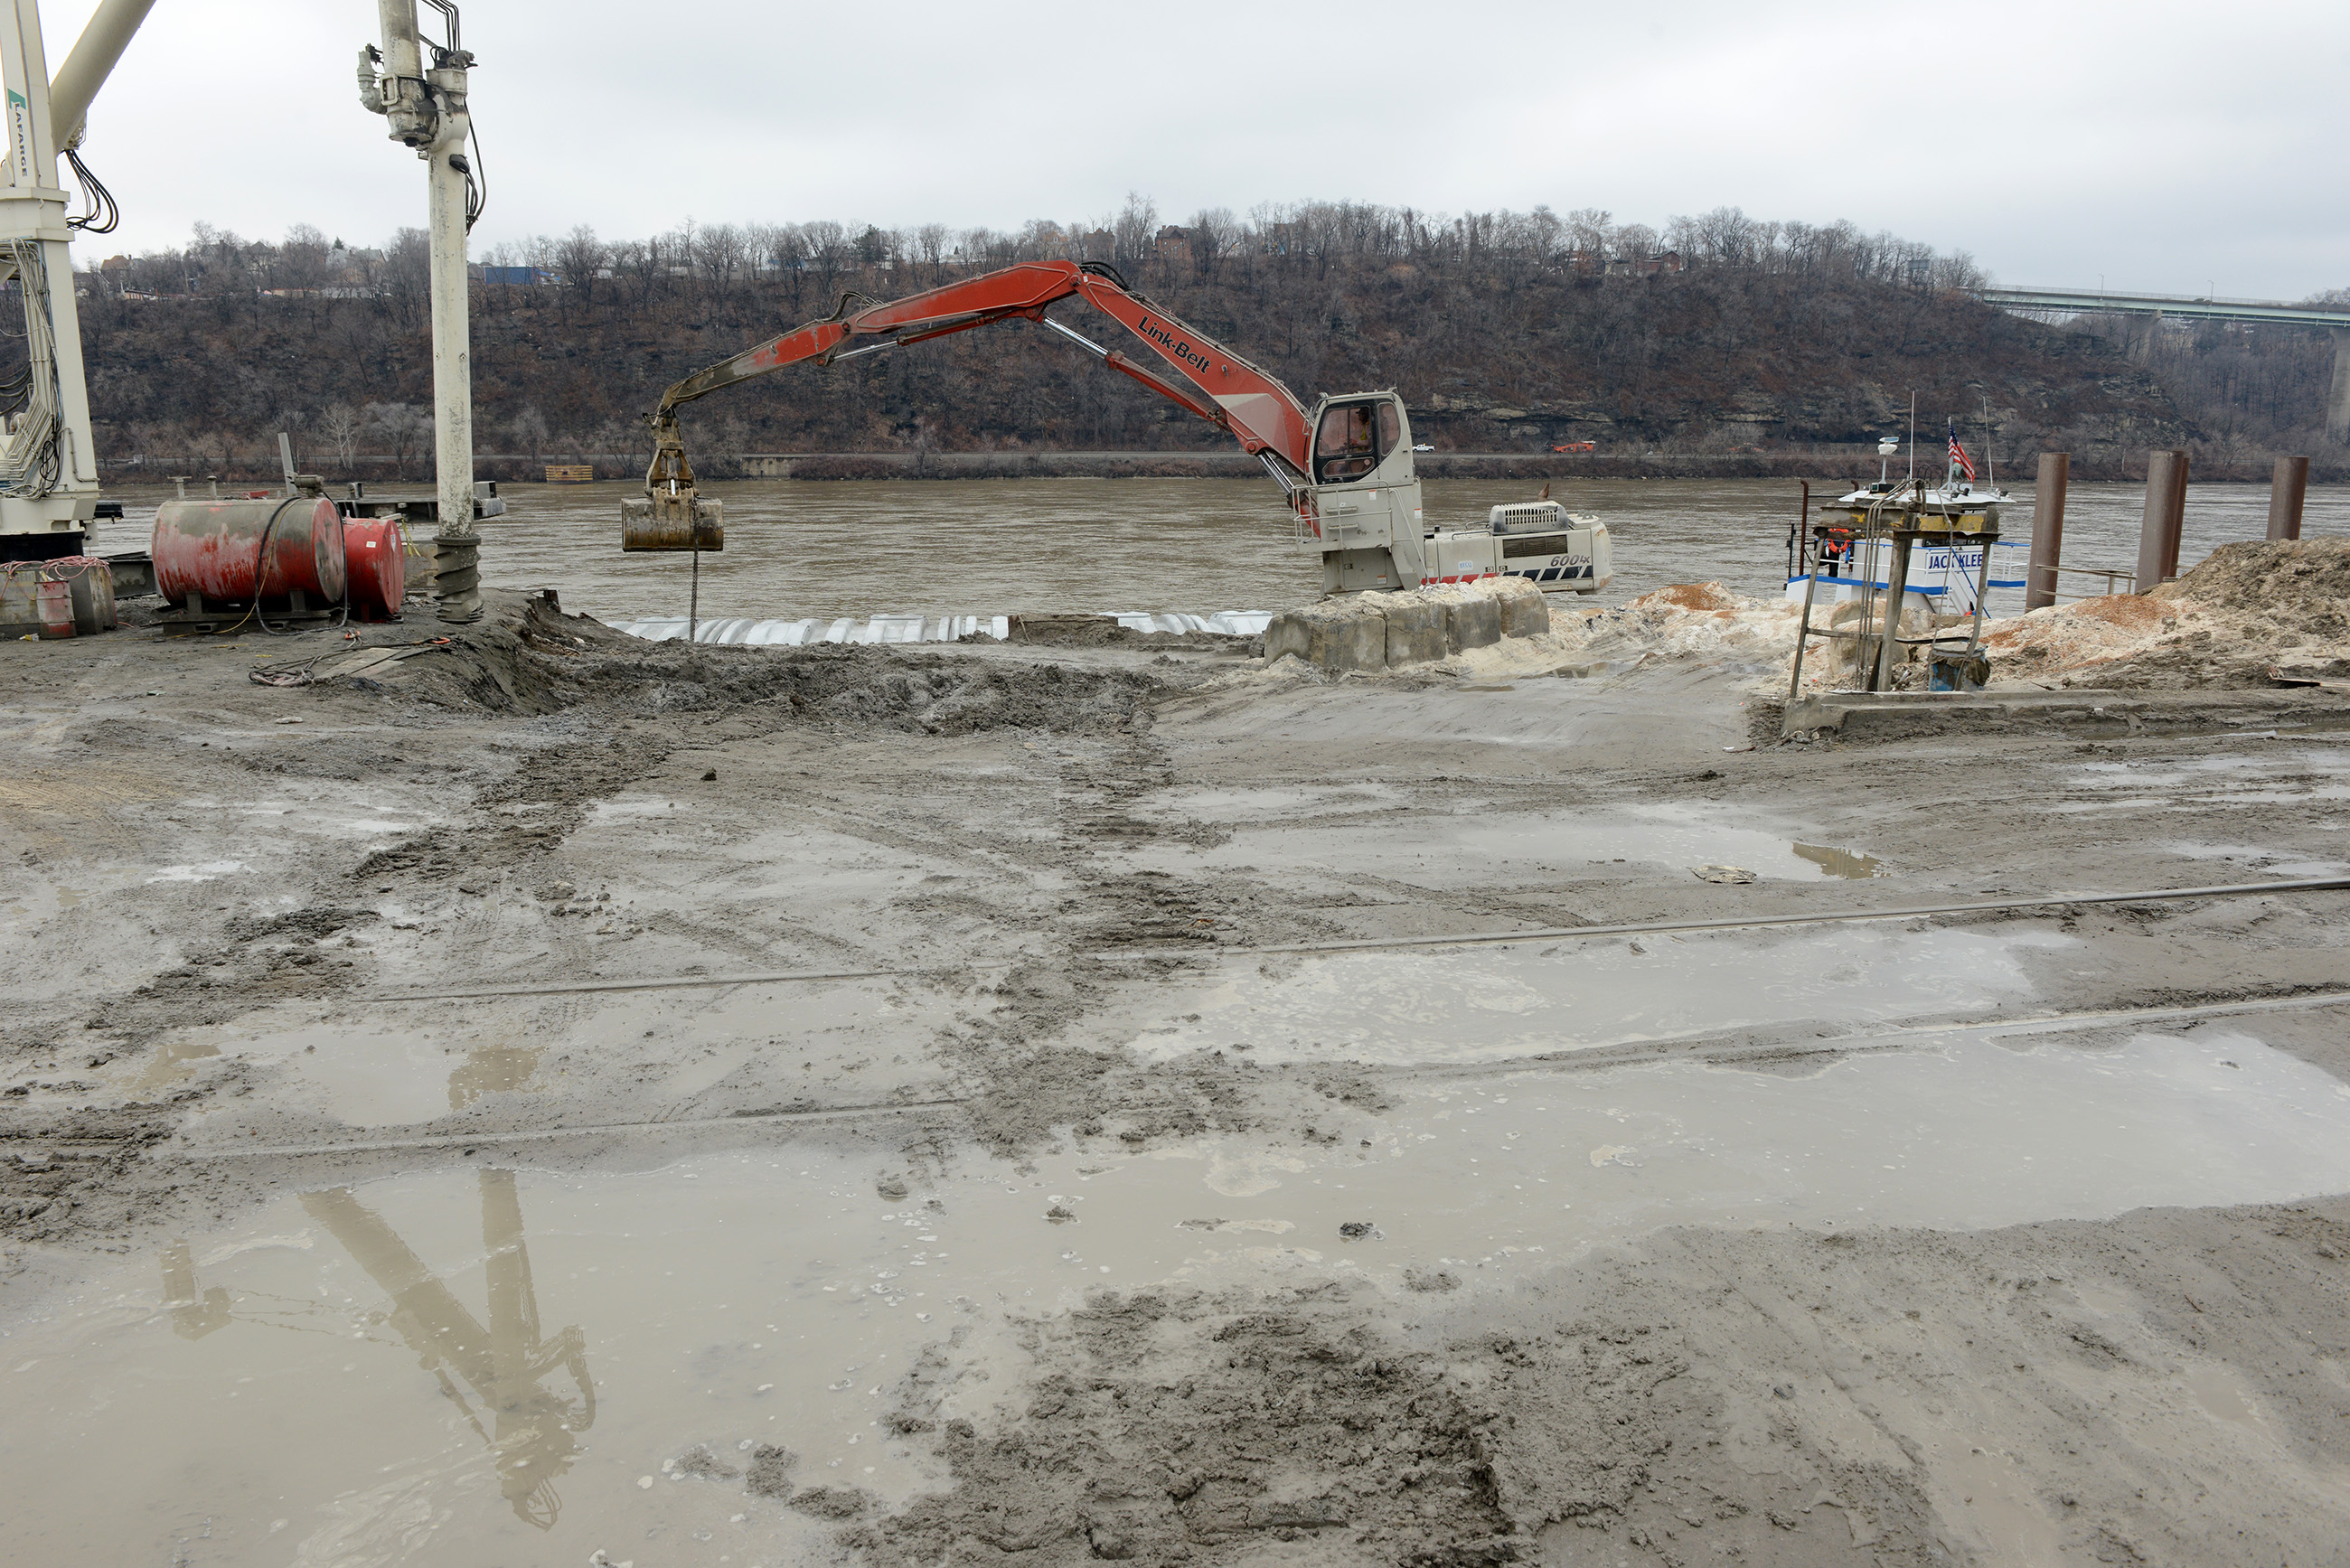 20150320MWHmrieBiz07-6 Michael Henninger/Post-Gazette 20150320 mrie Biz 03/20/2015 Equipment used to unload barges rest at the edge of the Ohio River at McKees Rocks Industrial Enterprises. An auger, left, and a Link-Belt excavator, right are used to process and move sand from incoming barges.